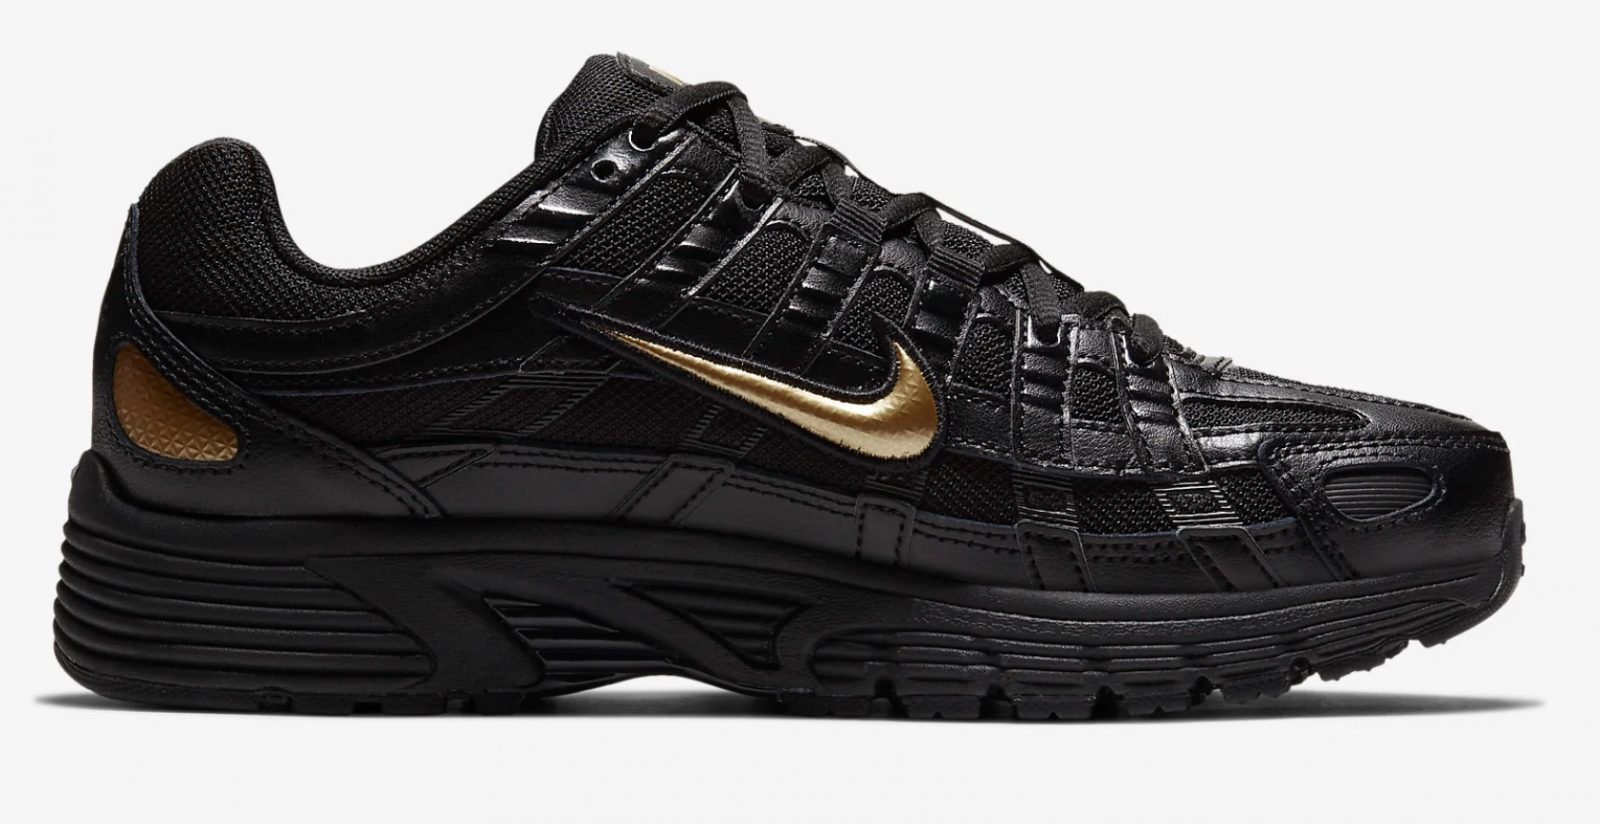 CJ9584-002 The Nike P-6000 Has Had An AW19 Makeover In Black And Gold 5 side 1